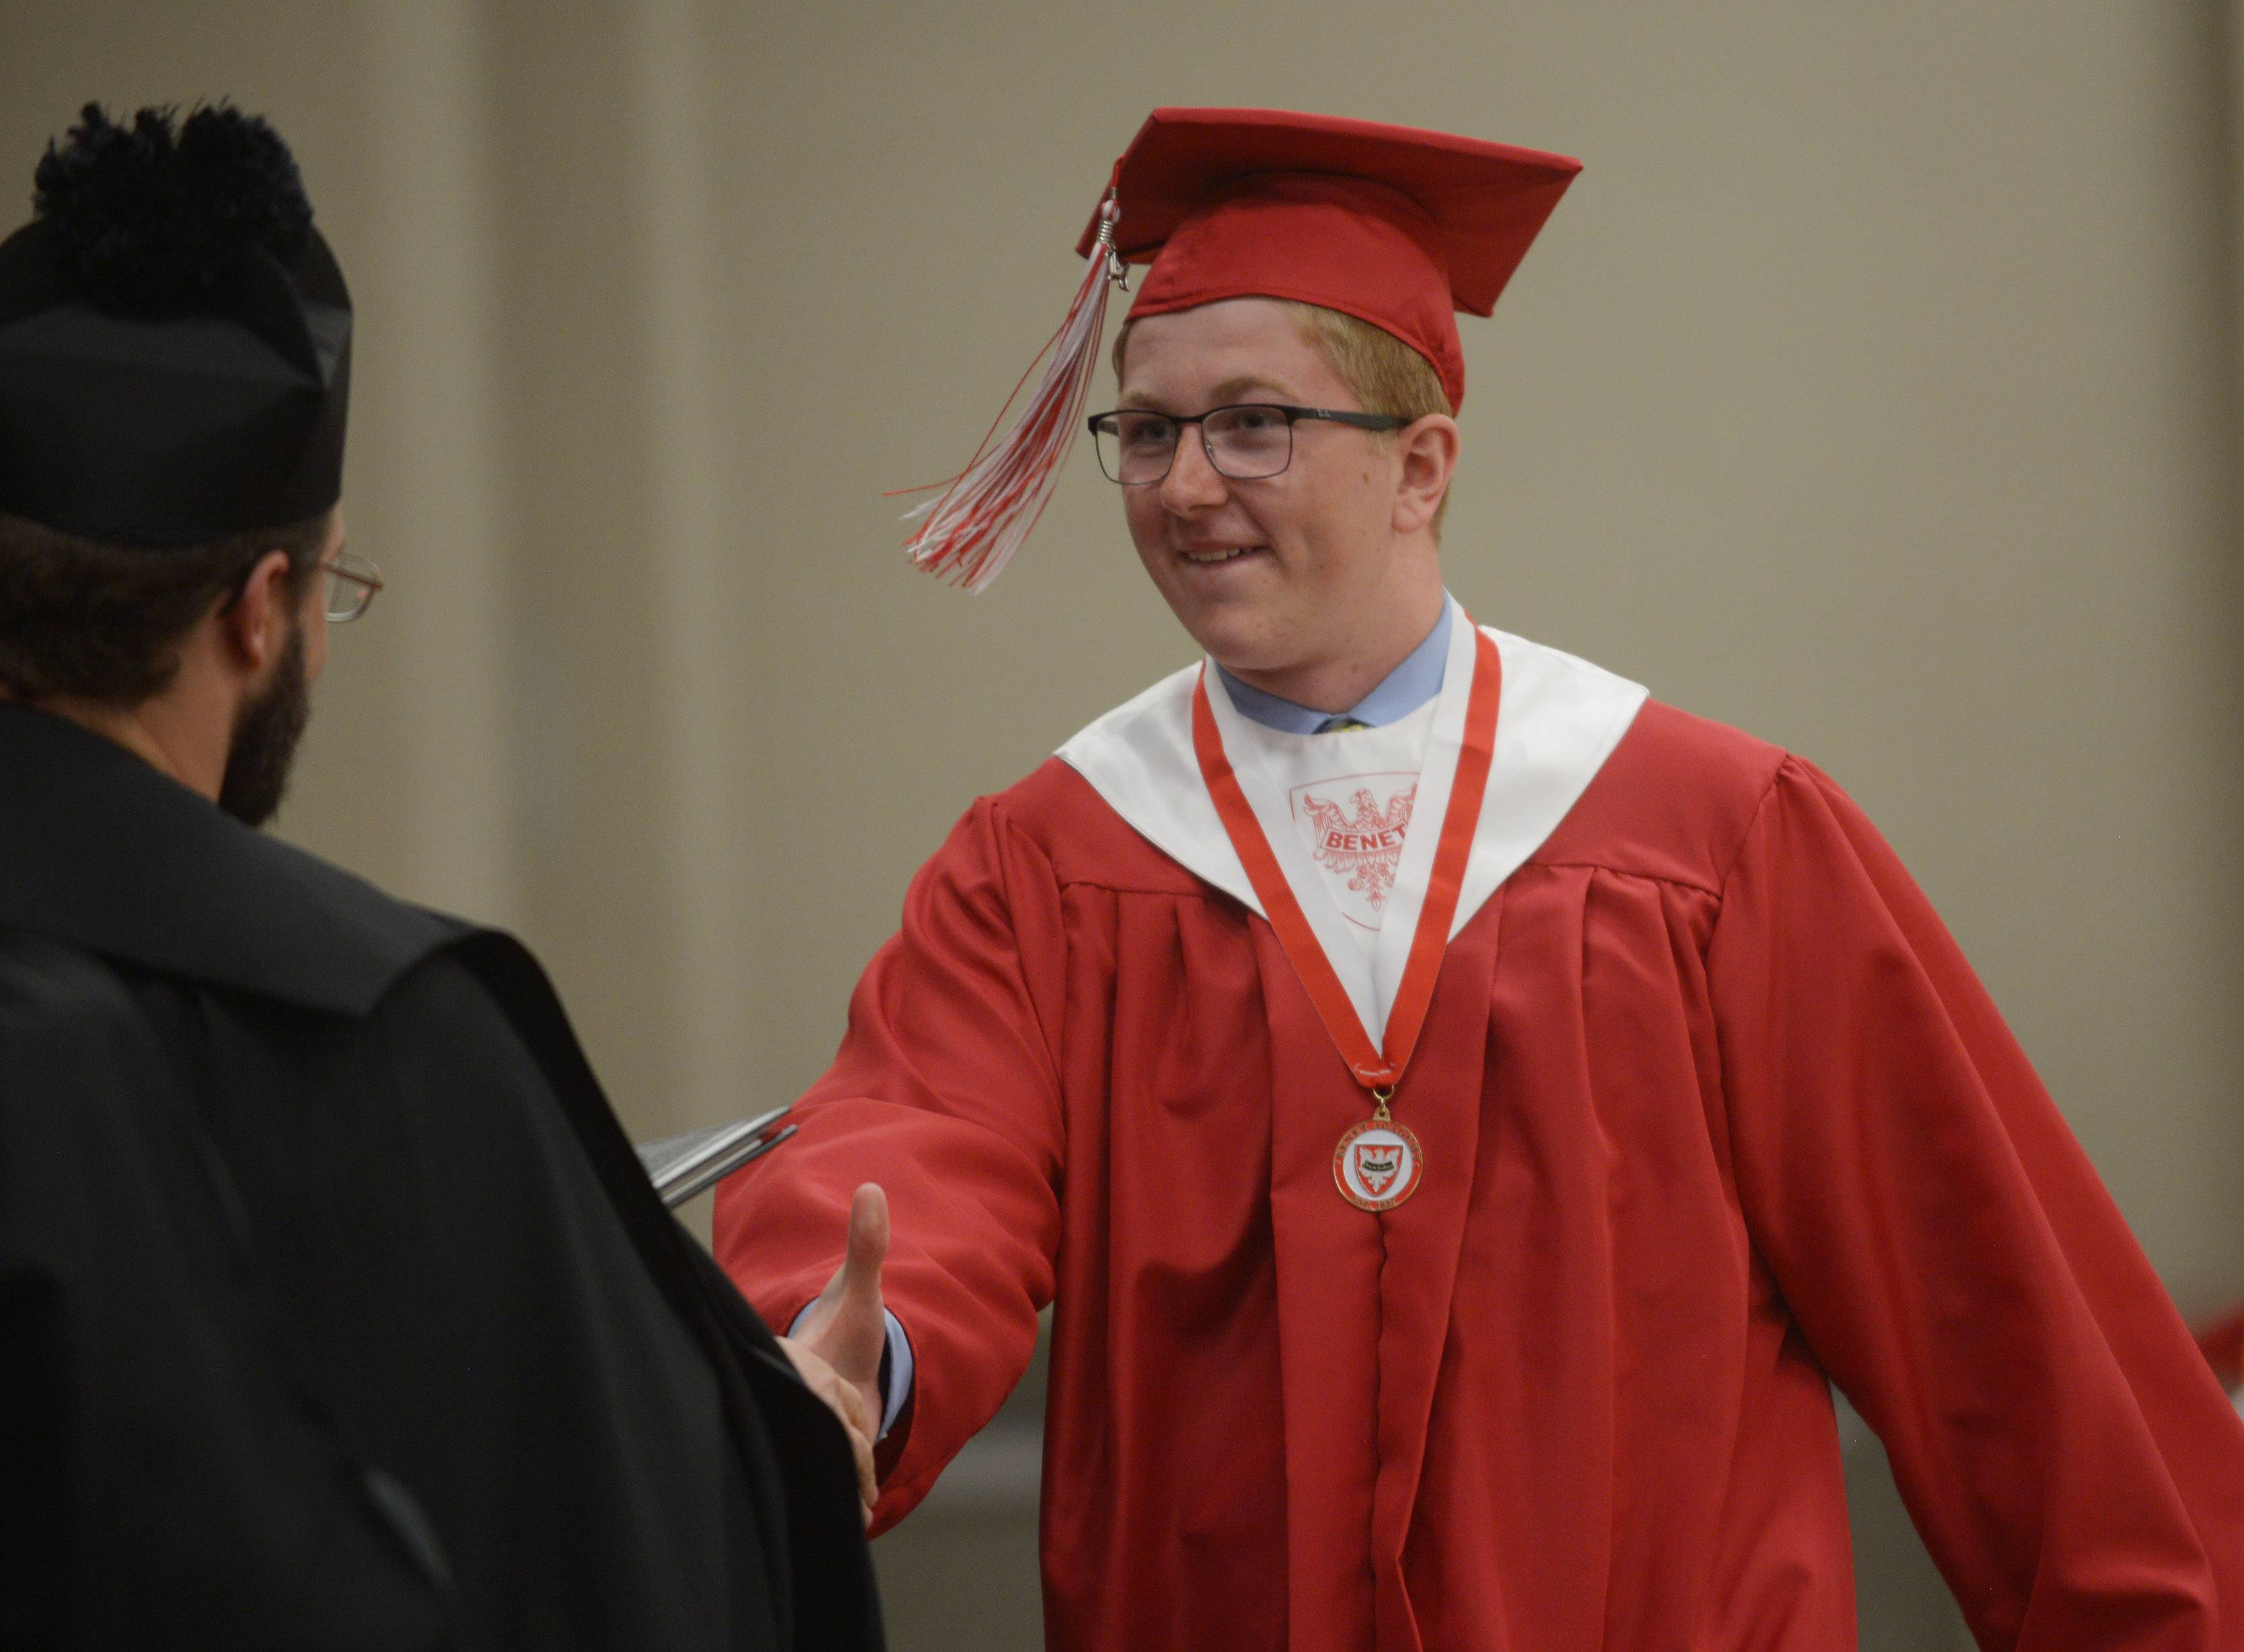 Student Government President Max Tuttle receives his diploma from Rt. Rev. Austin Murphy, O. S. B during the Benet Academy graduation in Lisle Sunday.